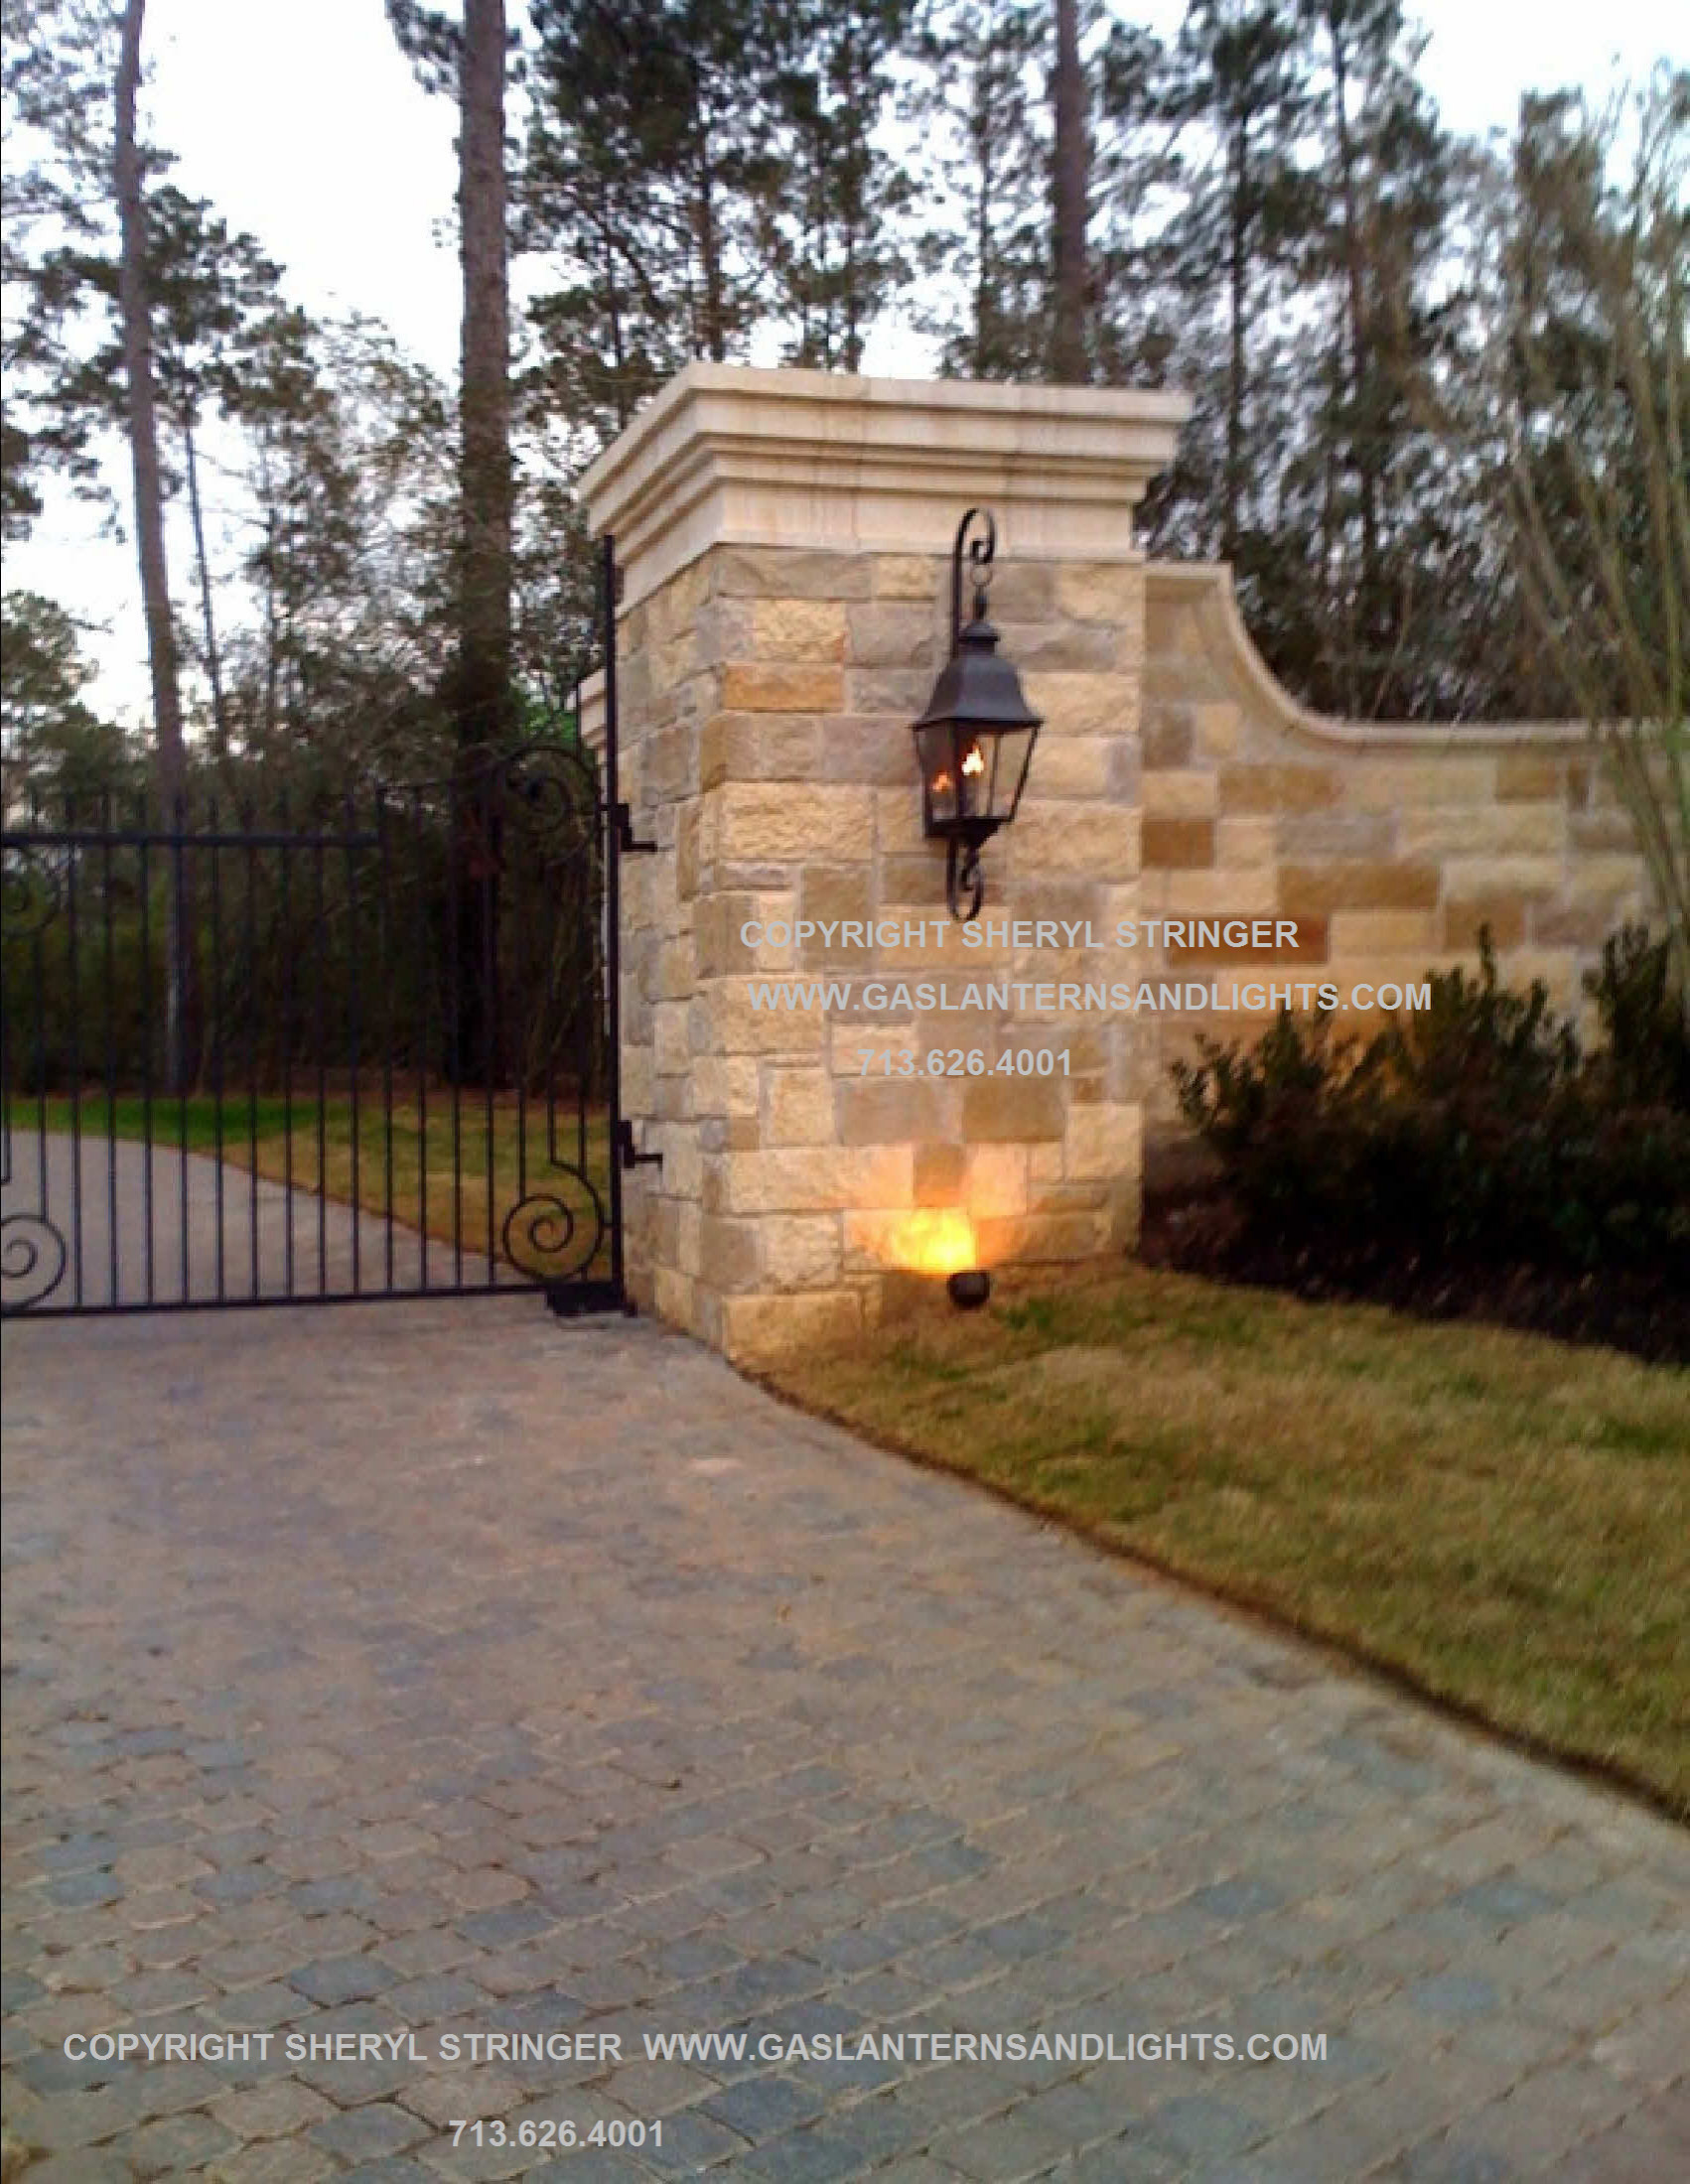 Sheryl's Tuscan Gas Lantern with Curls